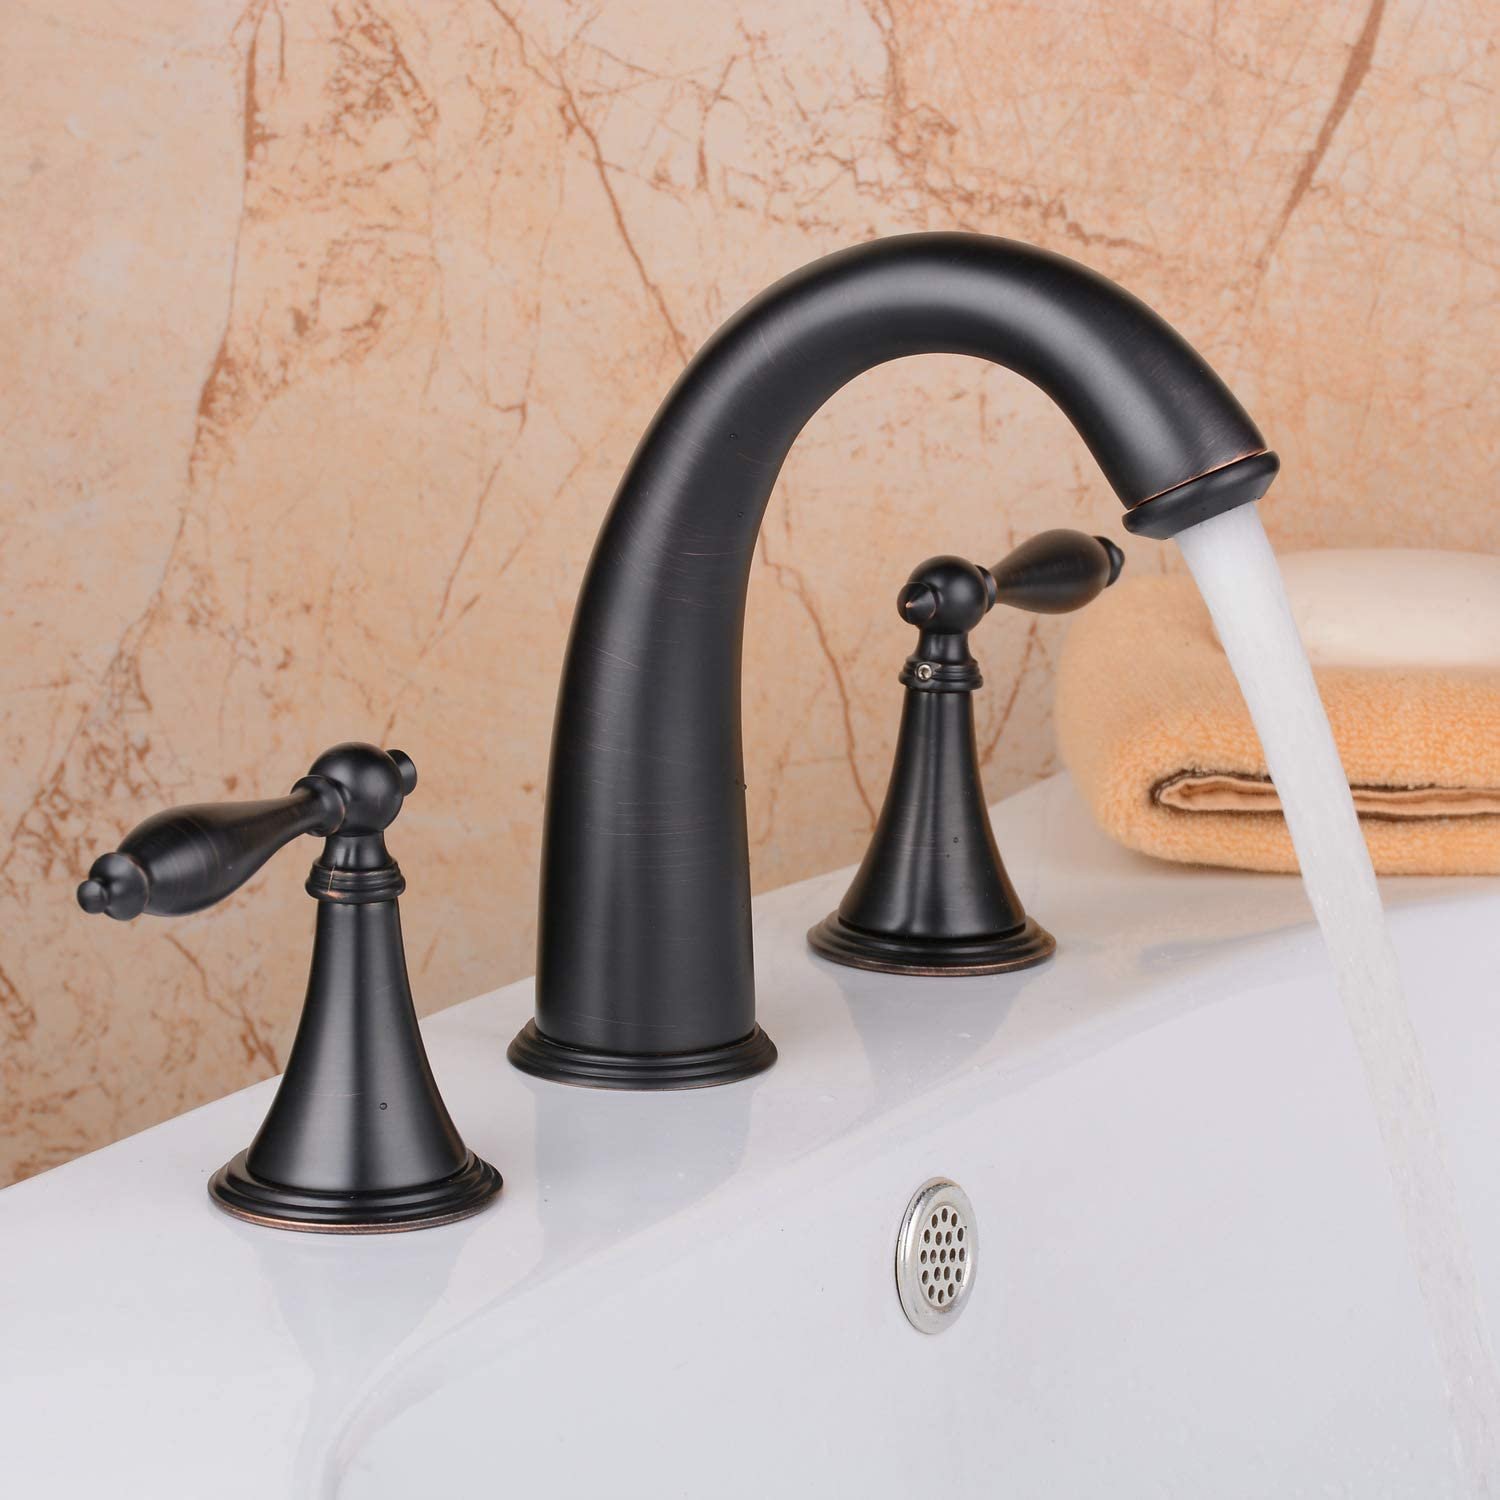 Bathroom Sink Faucet,Solid Brass 2 Handles 3 Holes Widespread Bathroom Faucet Without Pop Up Drain,Black